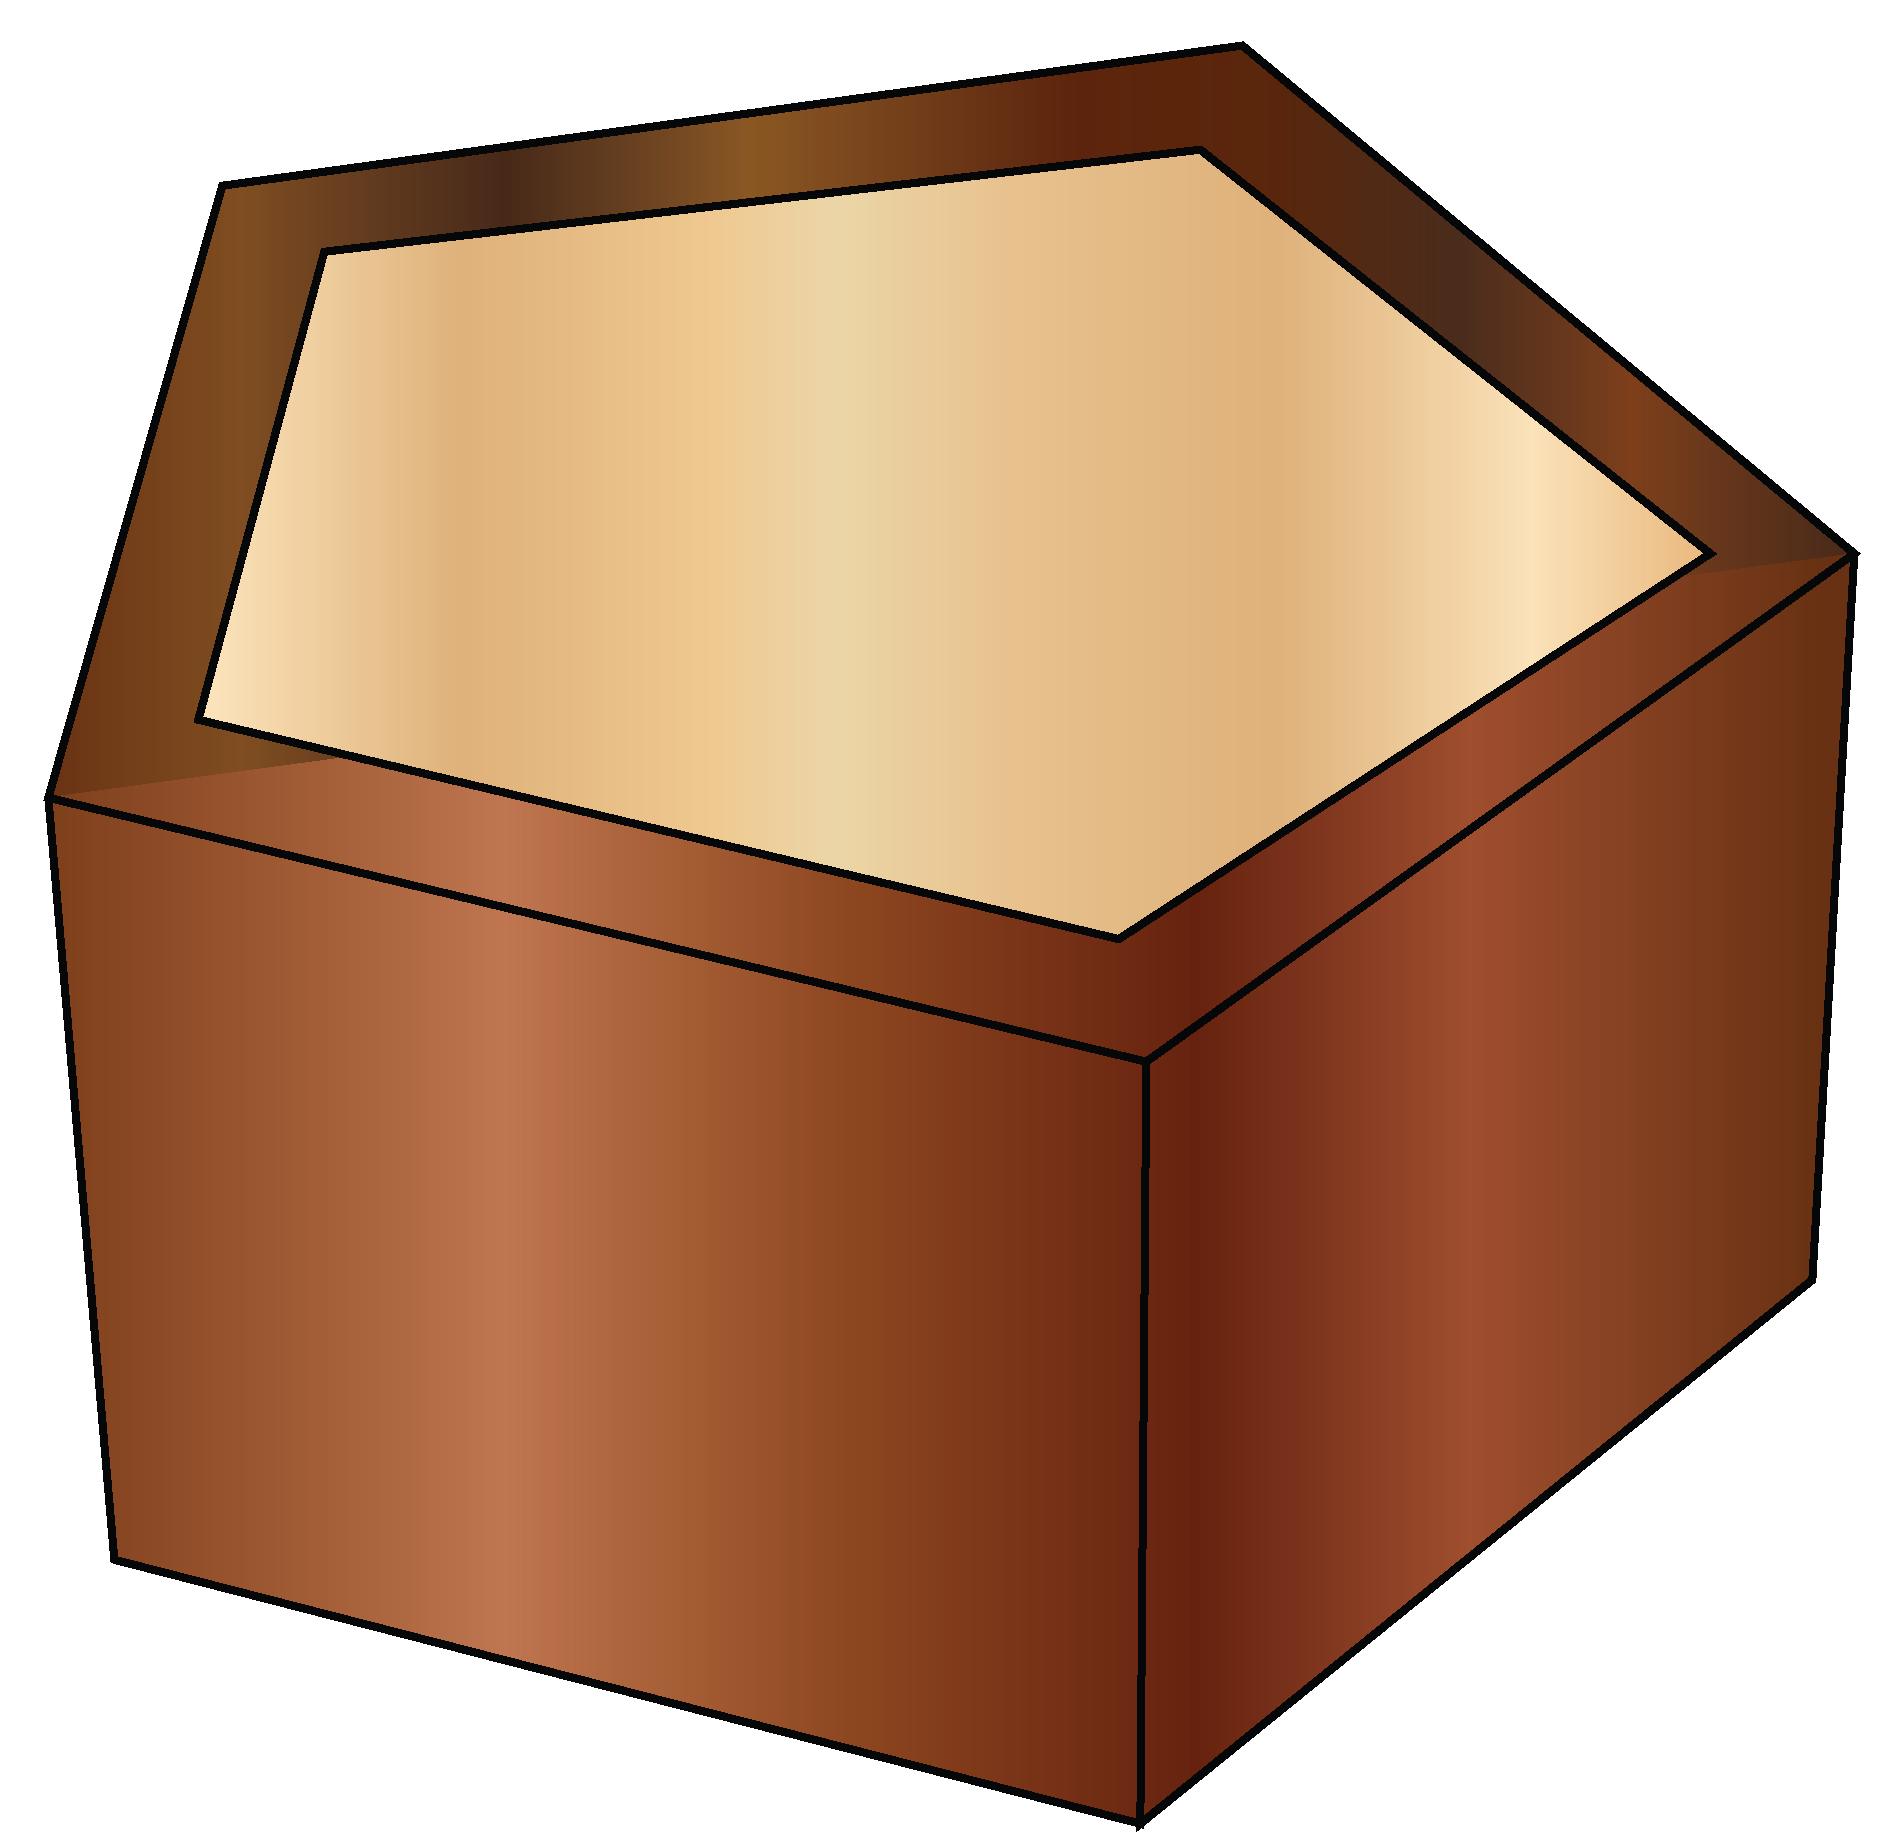 Example of a pentagonal shape